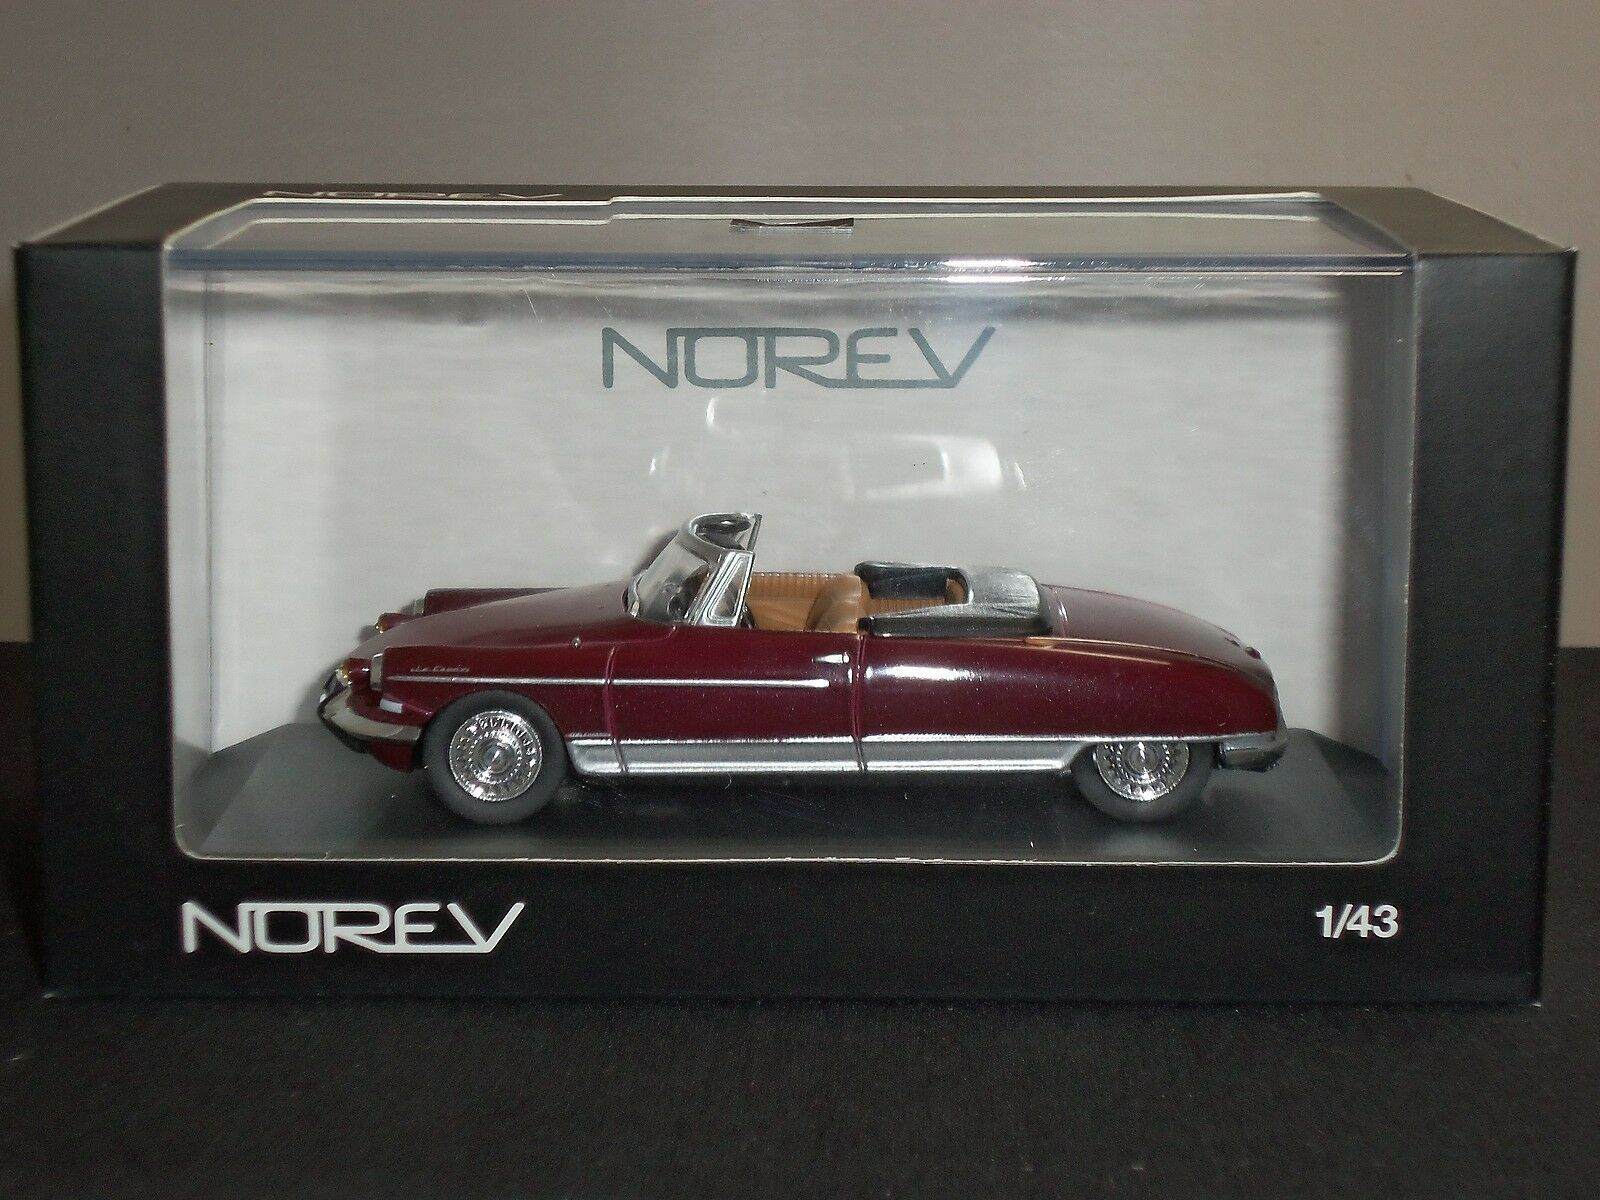 NOREV 157036 CITROEN ID 19 LE CADDY HENRI CHAPRON MAROON DIECAST MODEL CAR